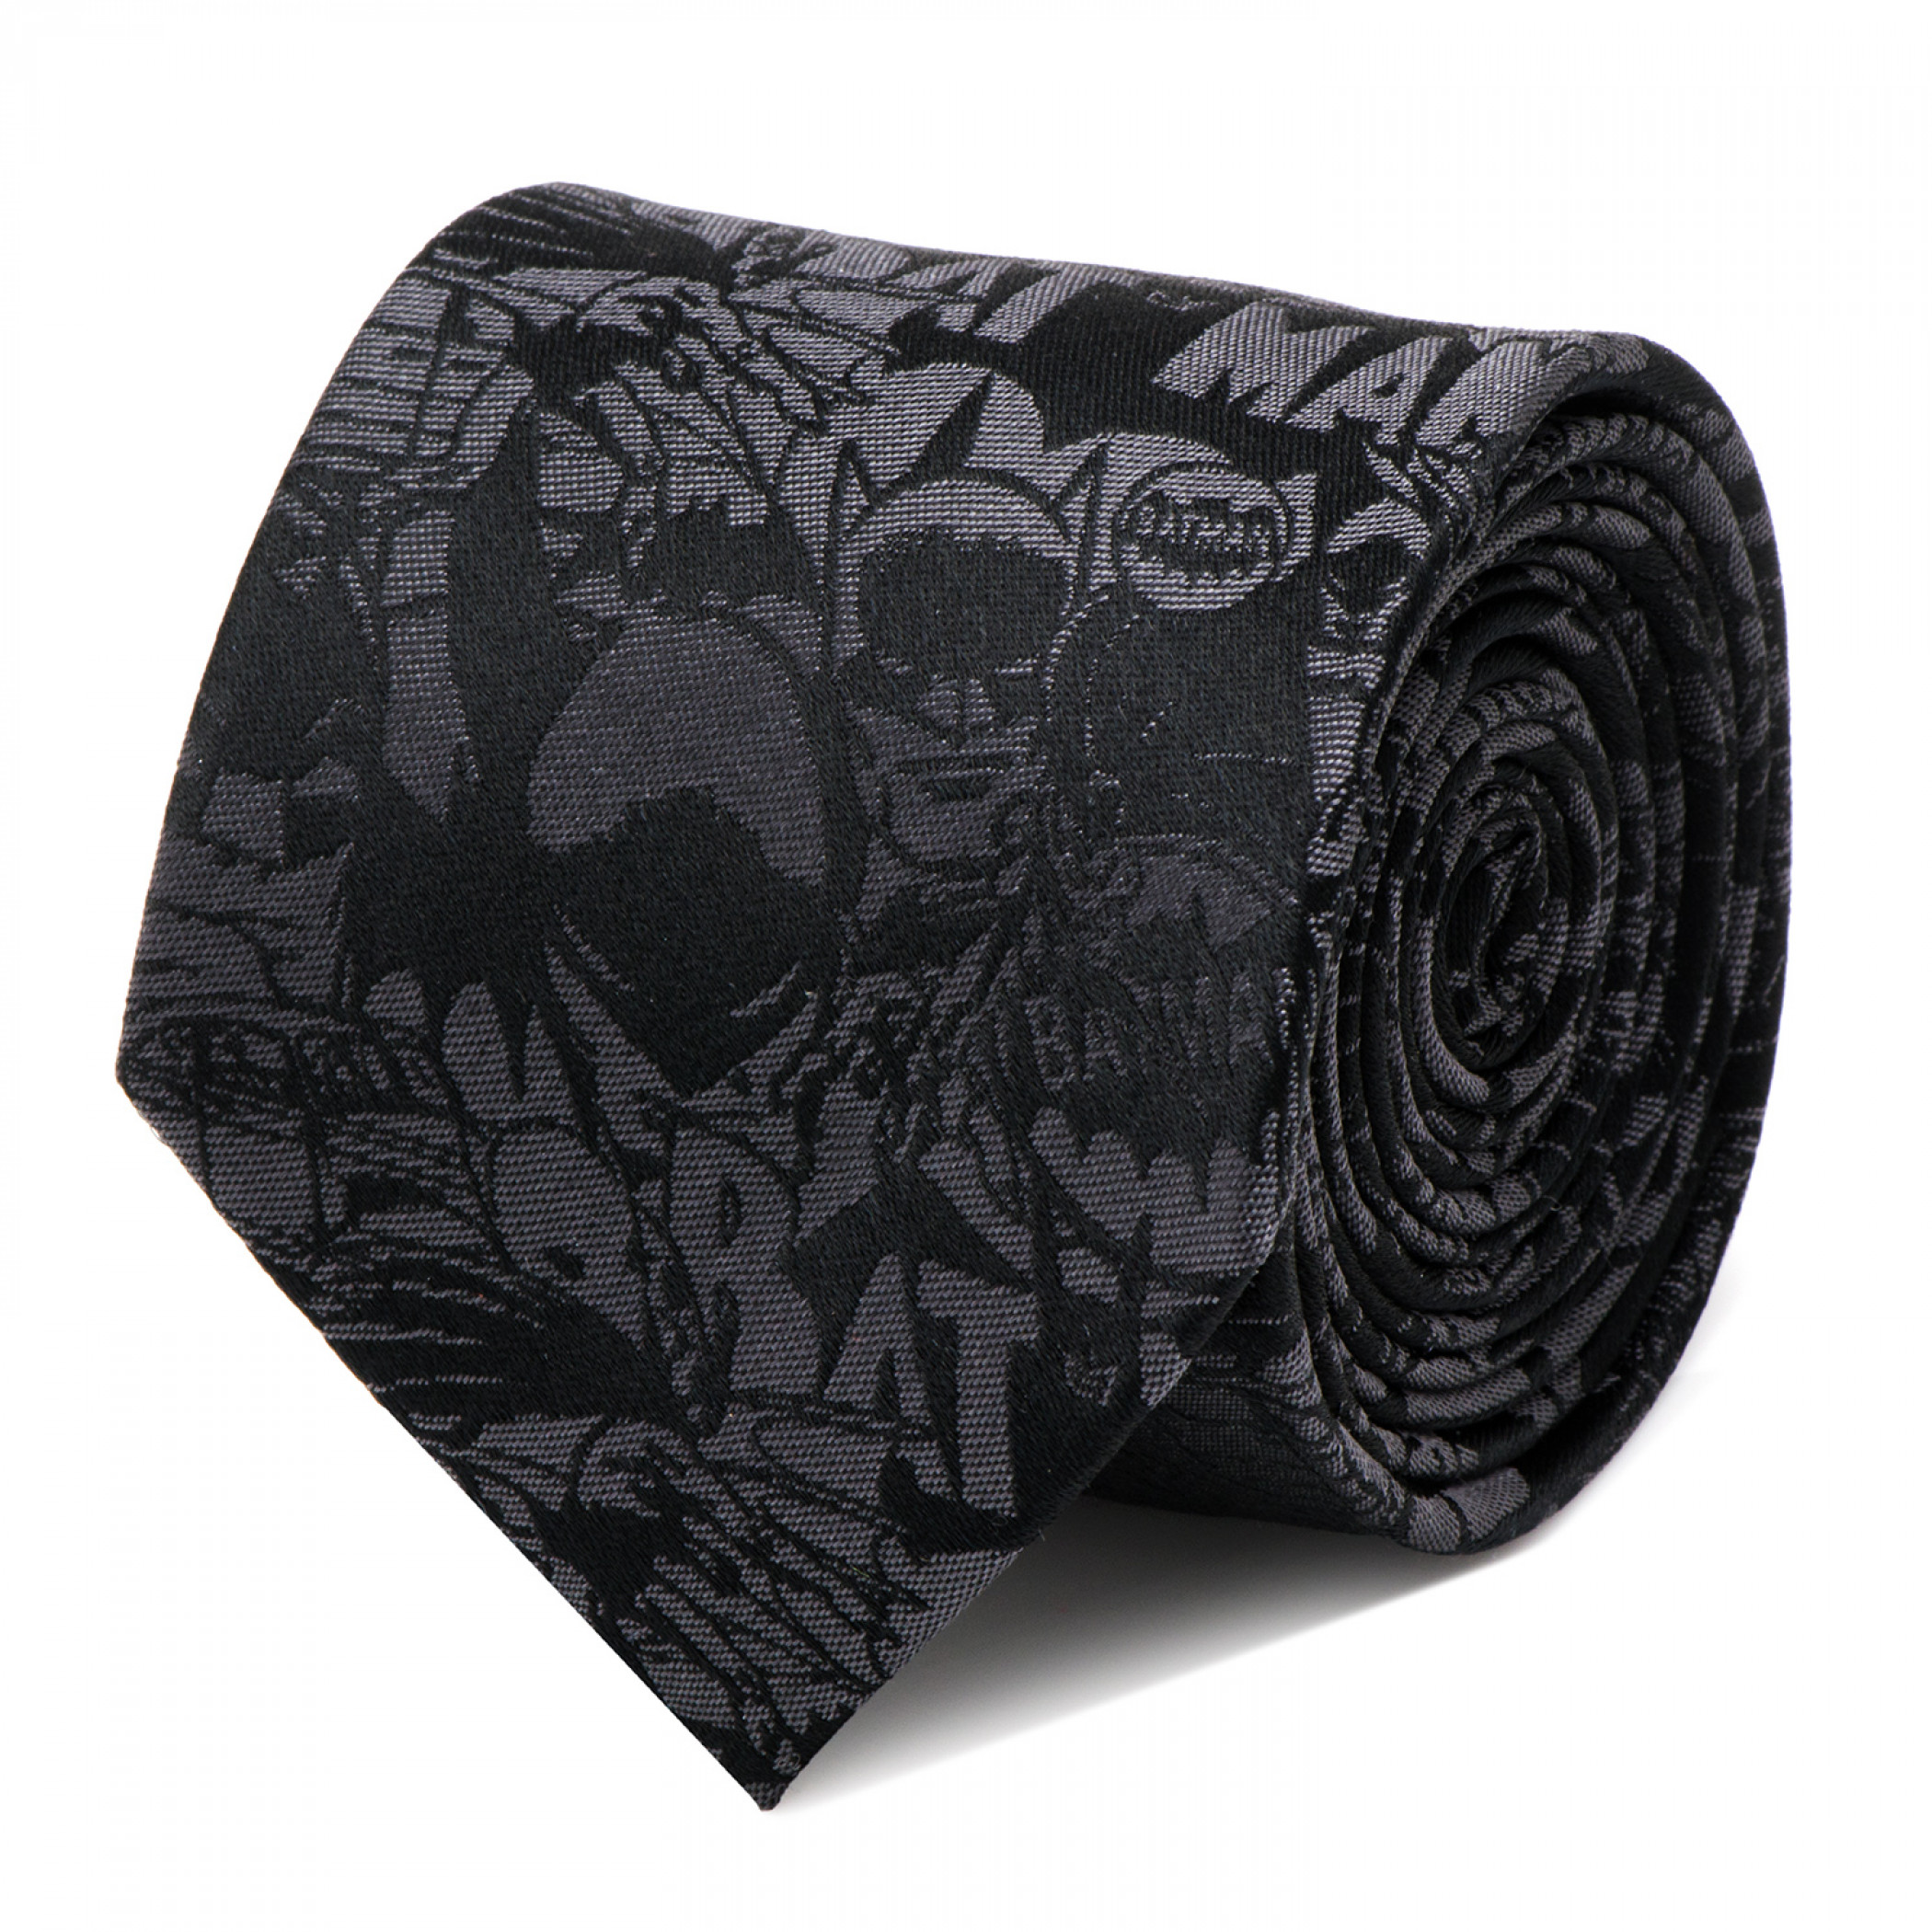 Batman Comic Print Black Silk Tie